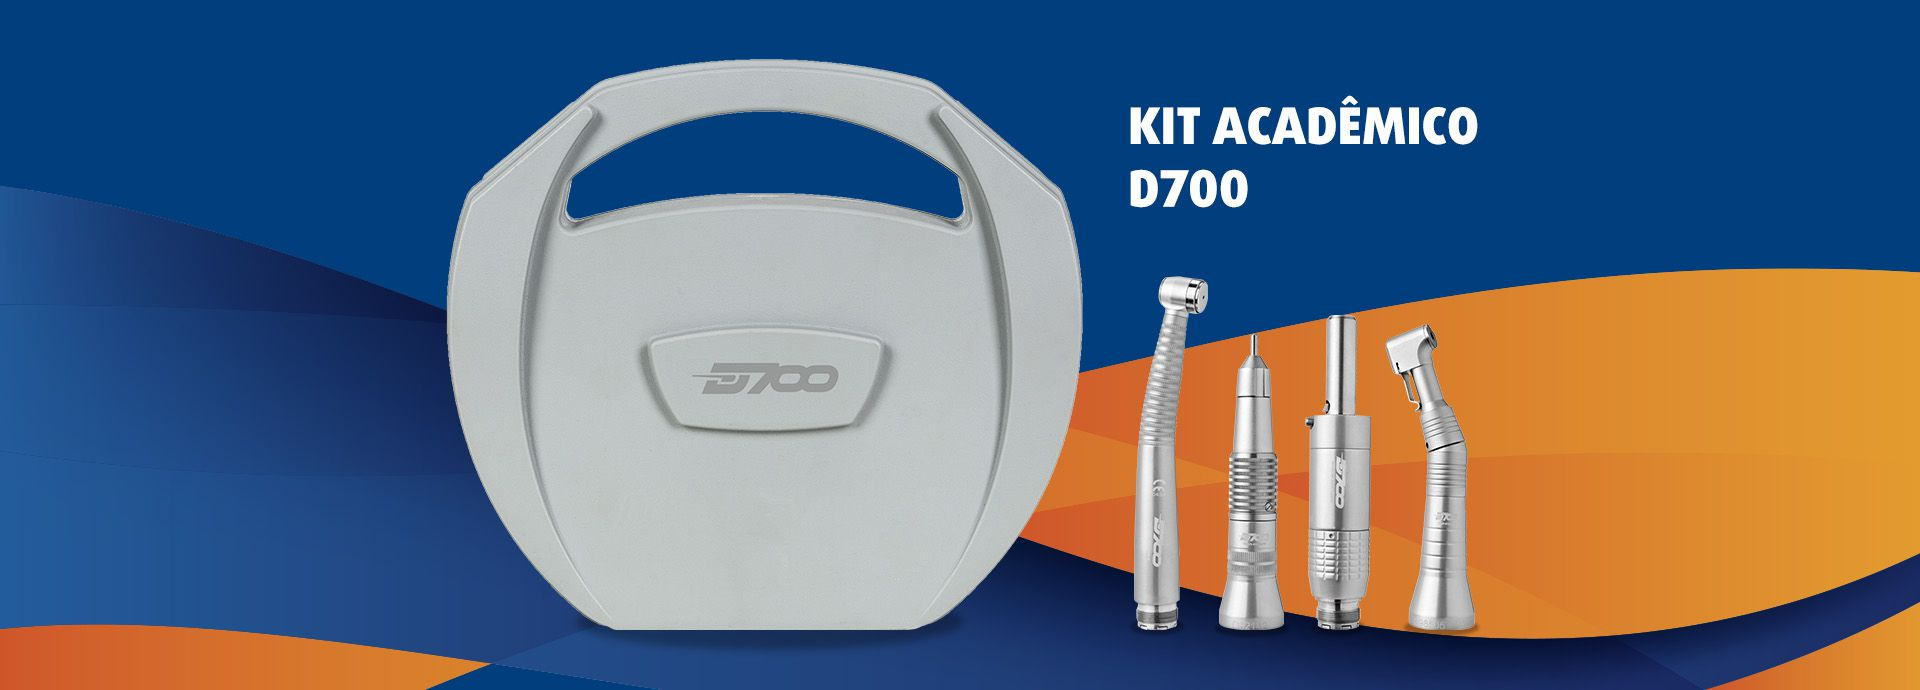 3.KIT ACADÊMICO D700  - DABI ATLANTE - TOP ODONTO